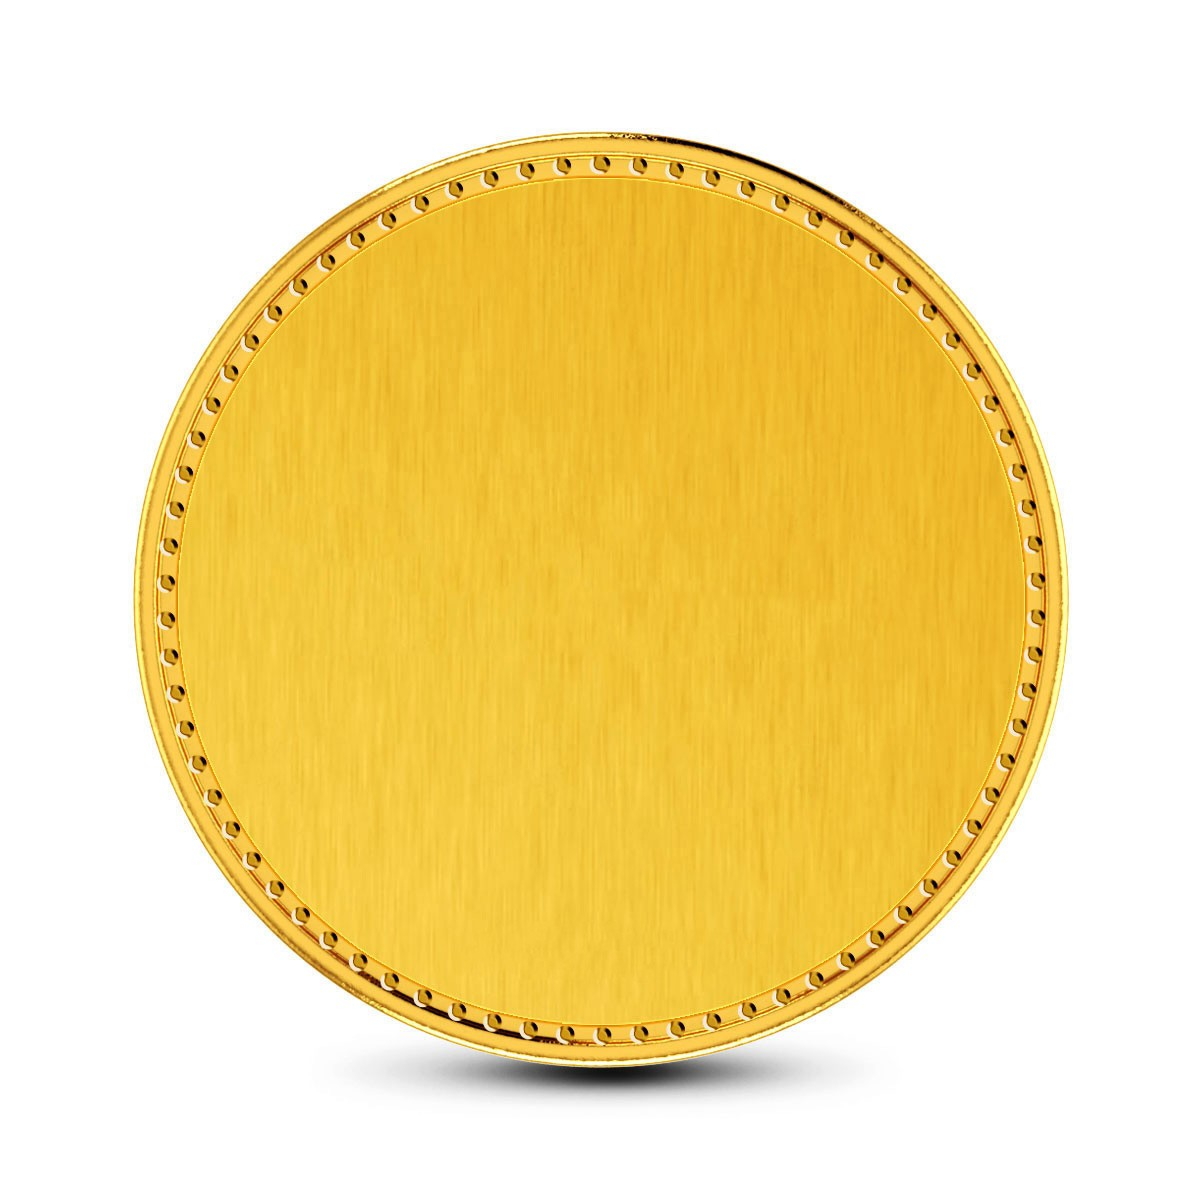 4 Gram 24Kt Plain Gold Coin